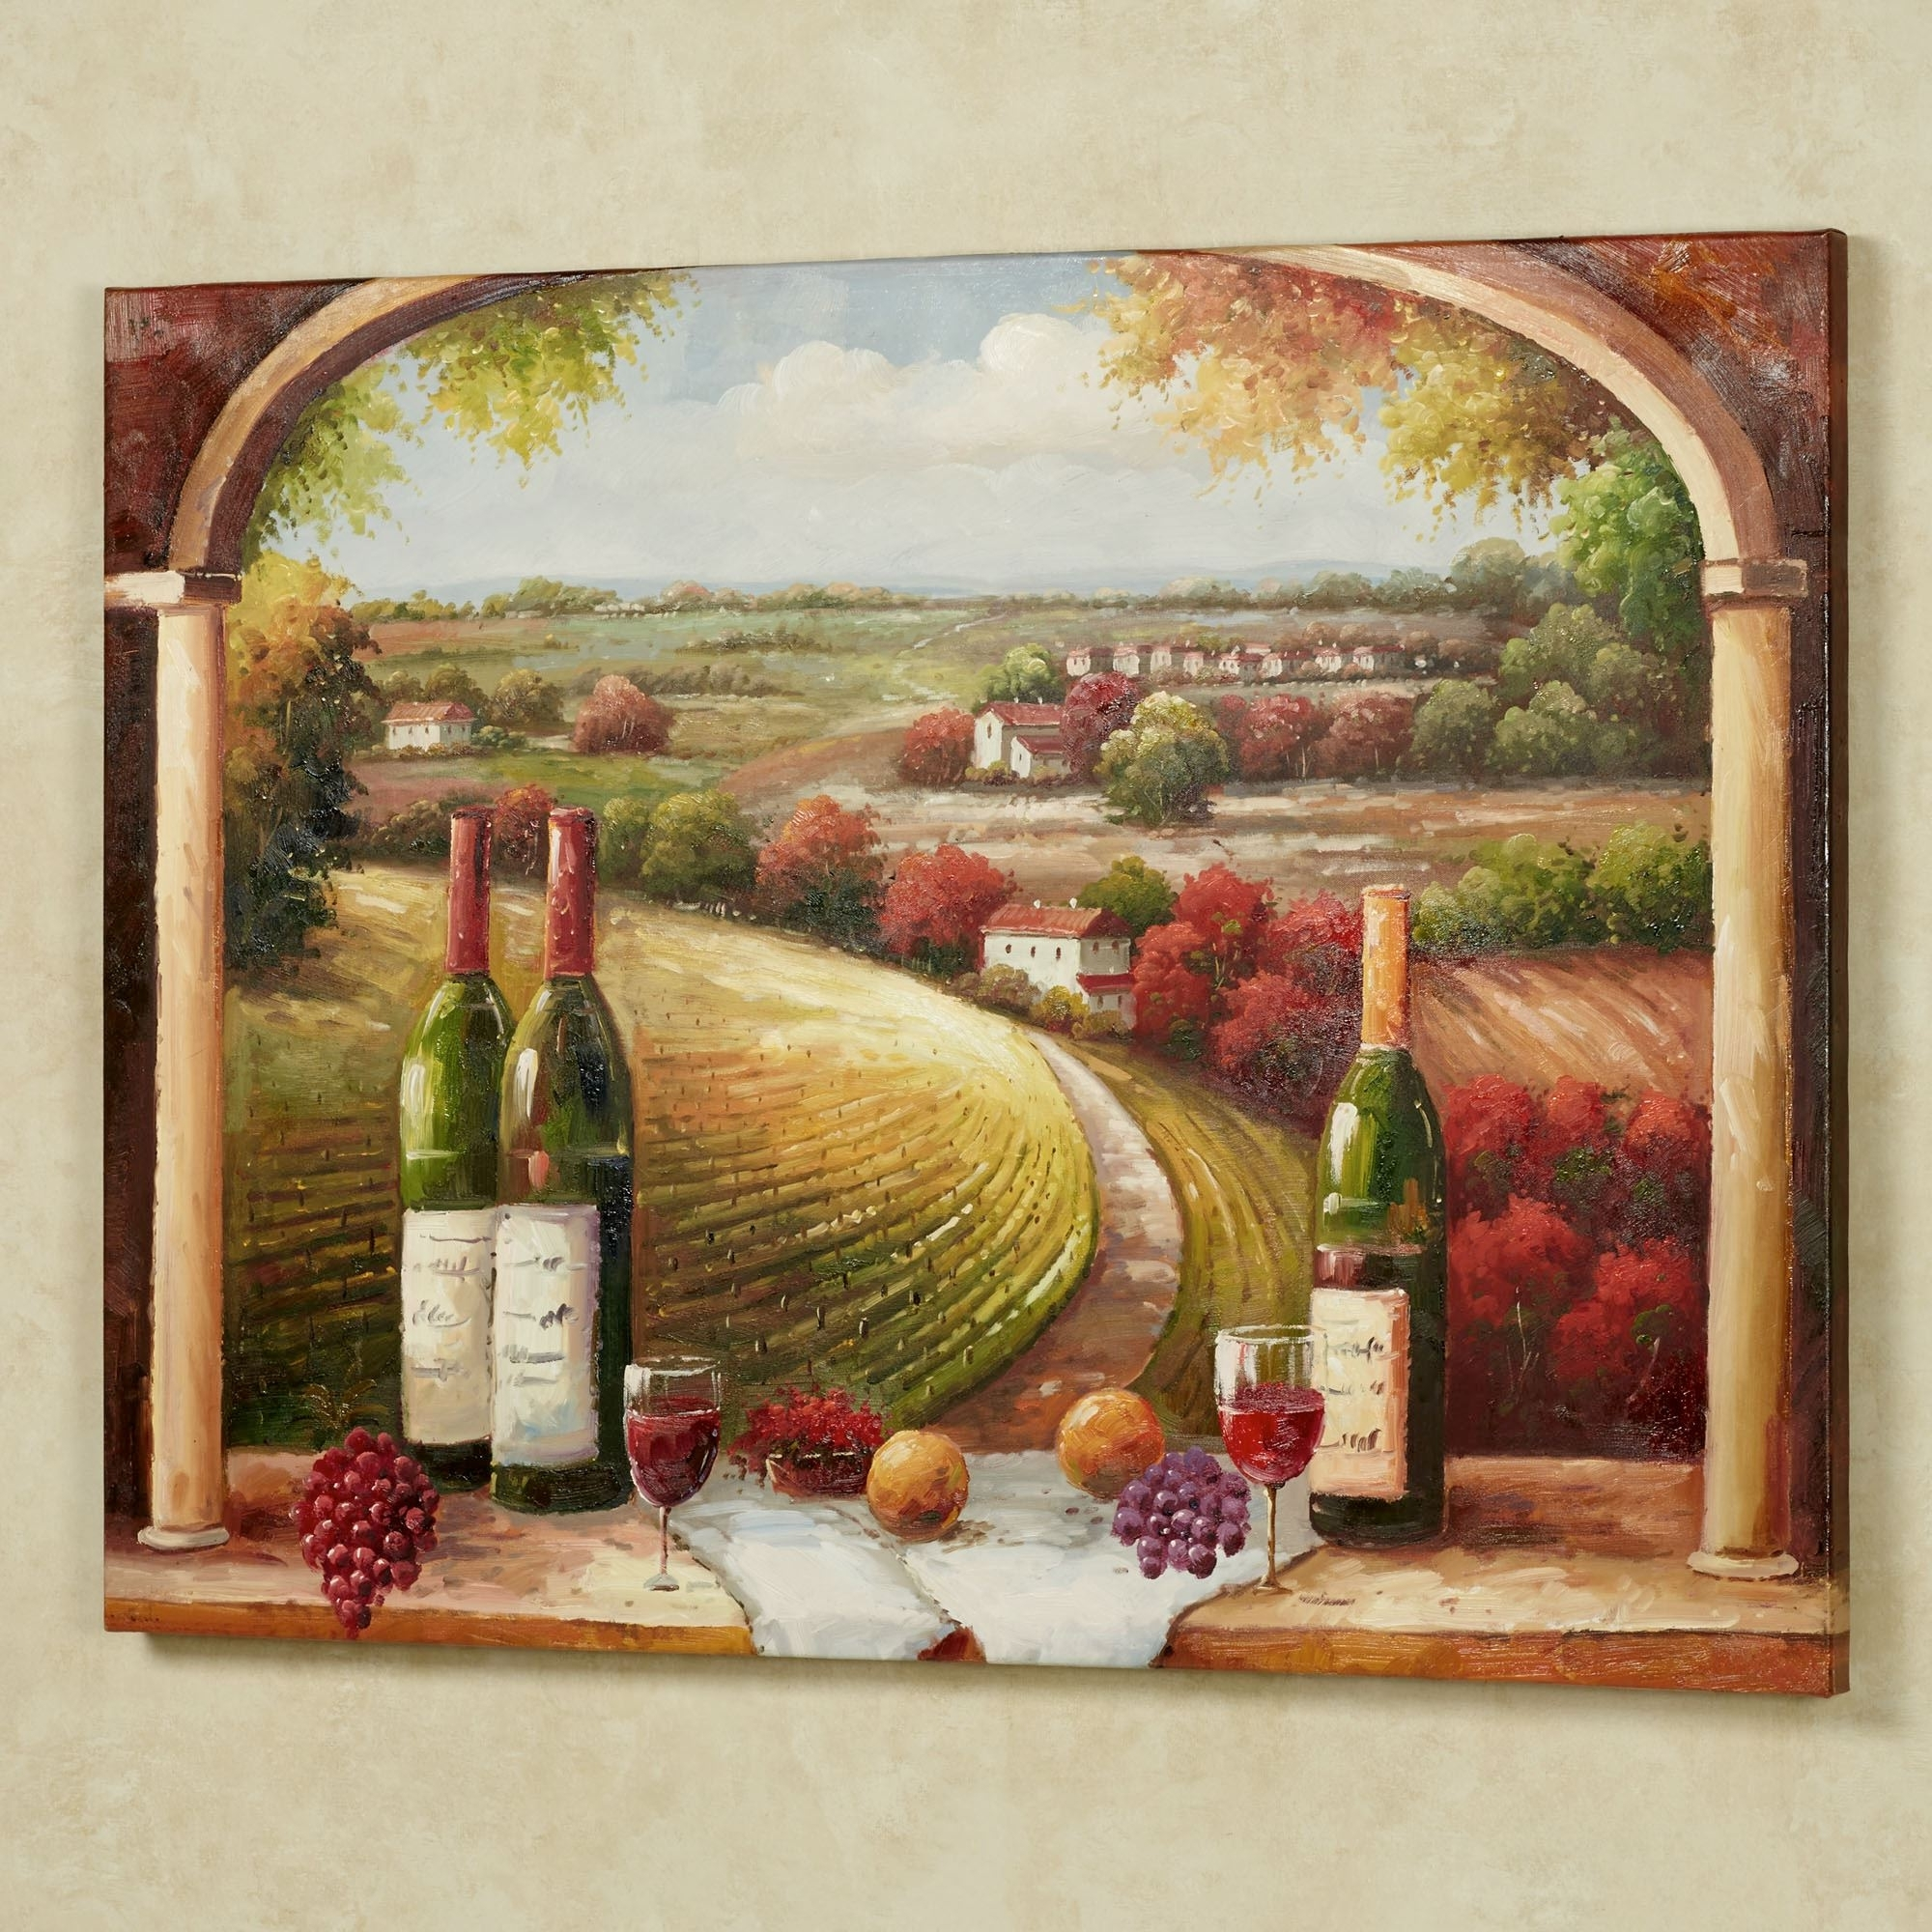 Touch Of Class With Italian Plates Wall Art (View 13 of 15)